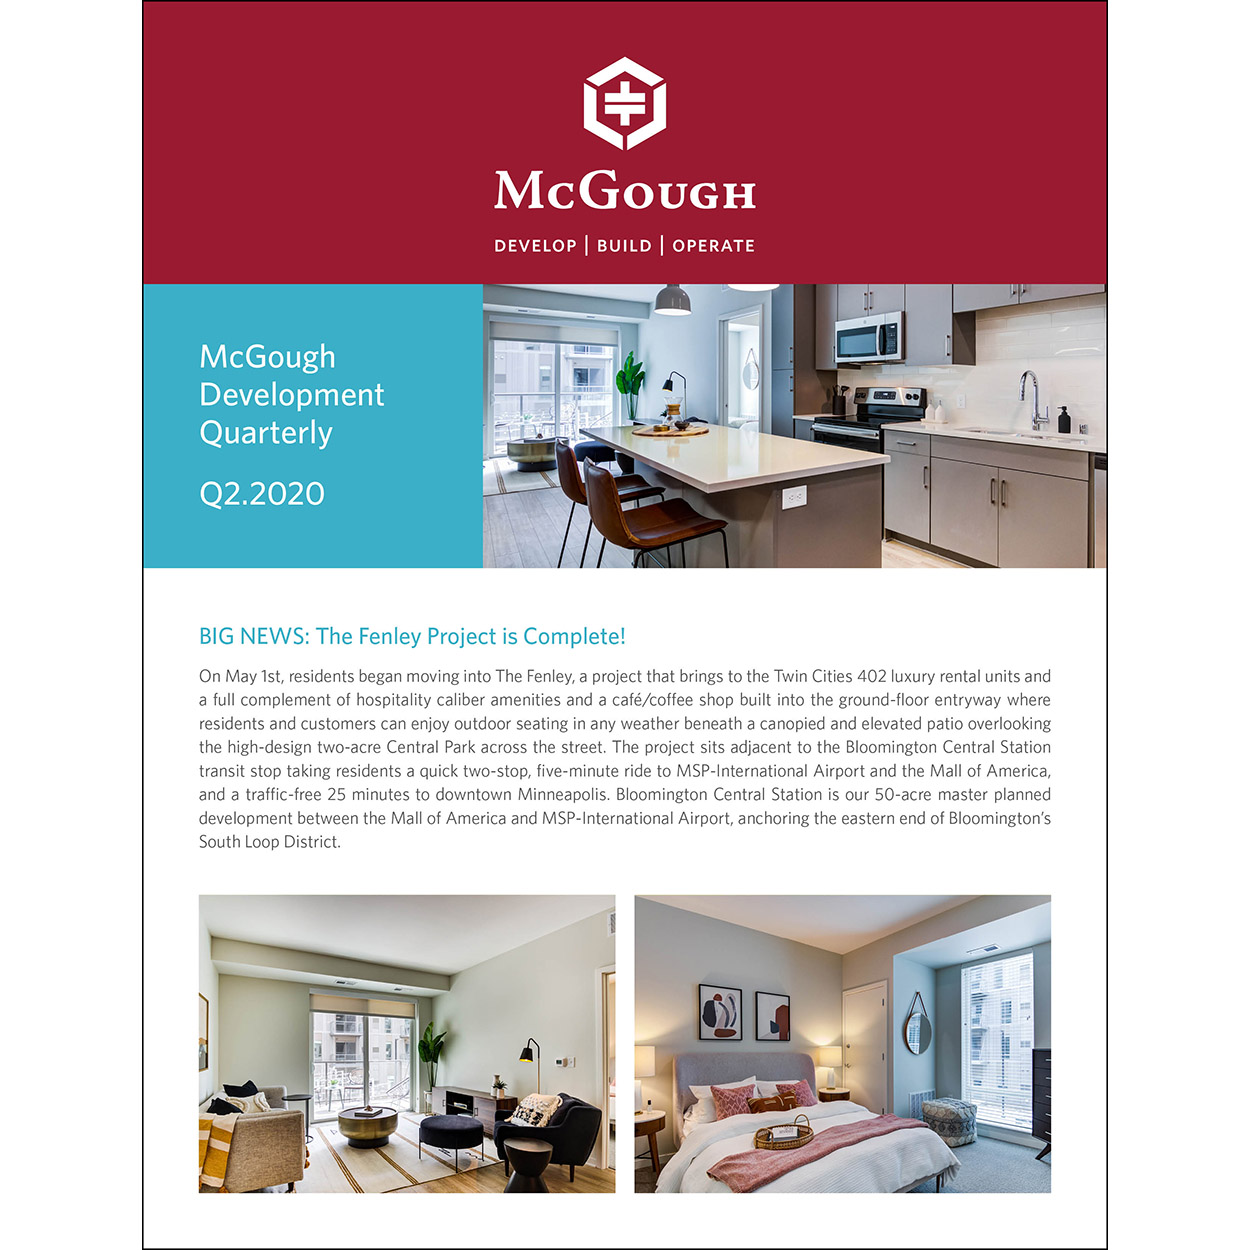 McGough Development Quarterly Newsletter Q2 2020